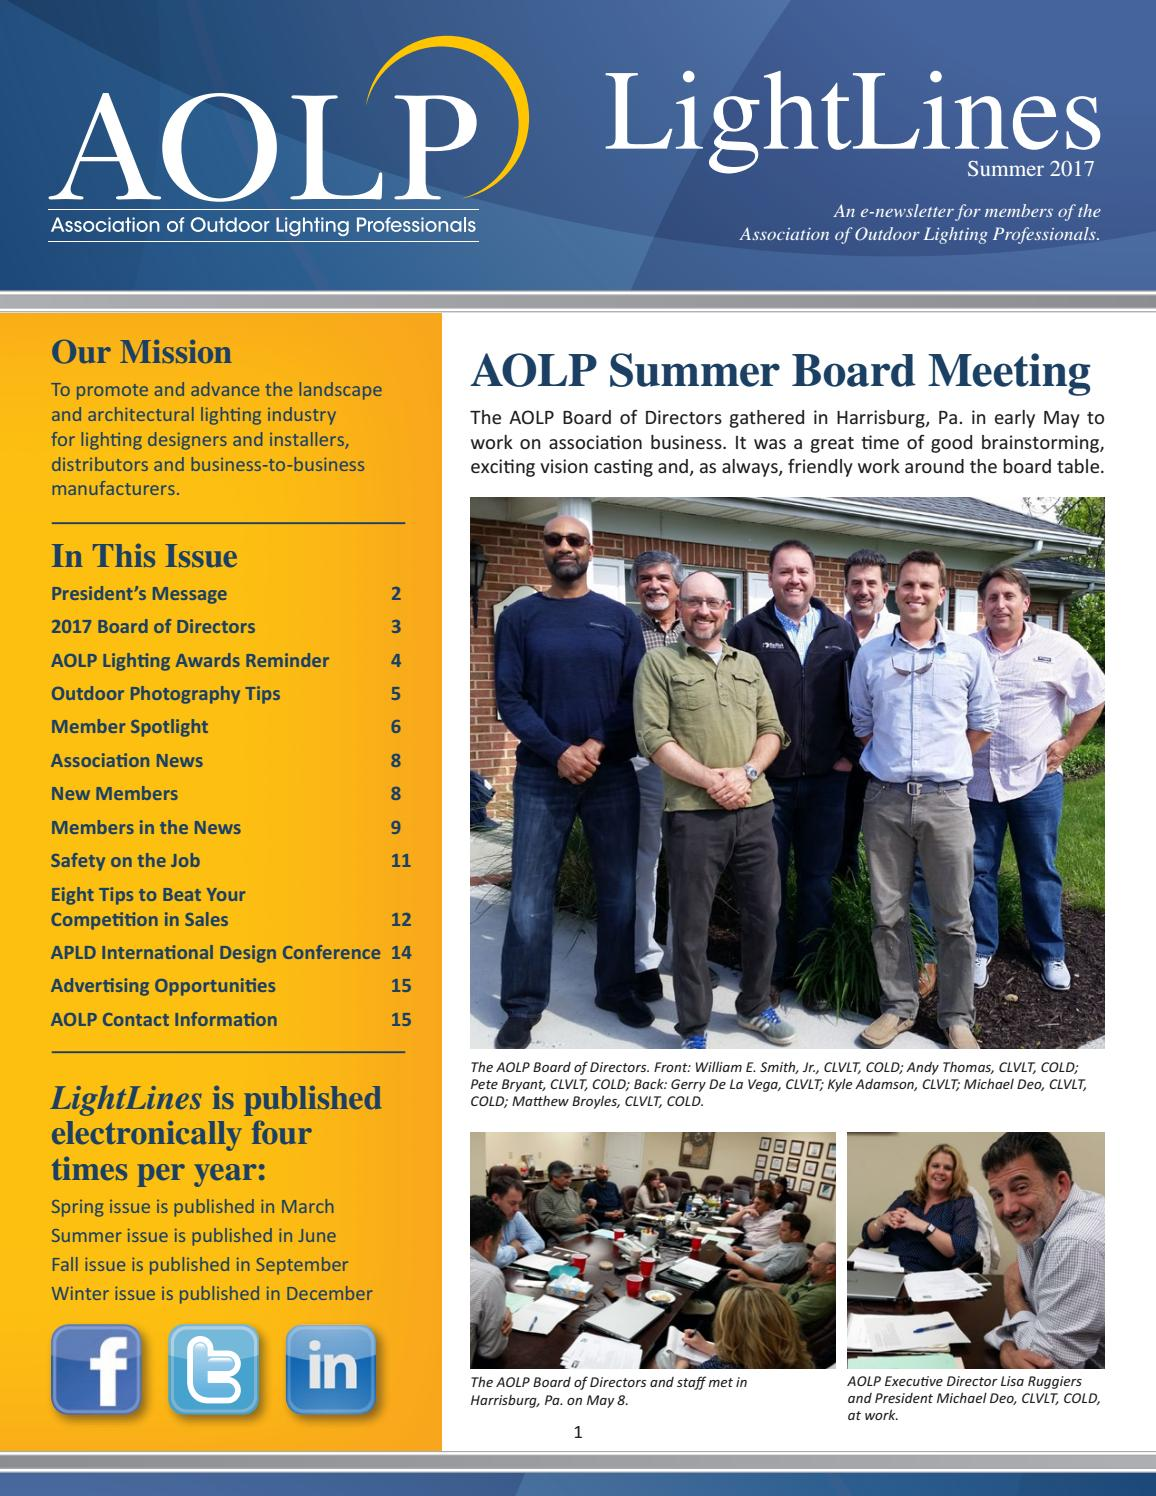 Aolp Lightlines 2017 Summer Issue By